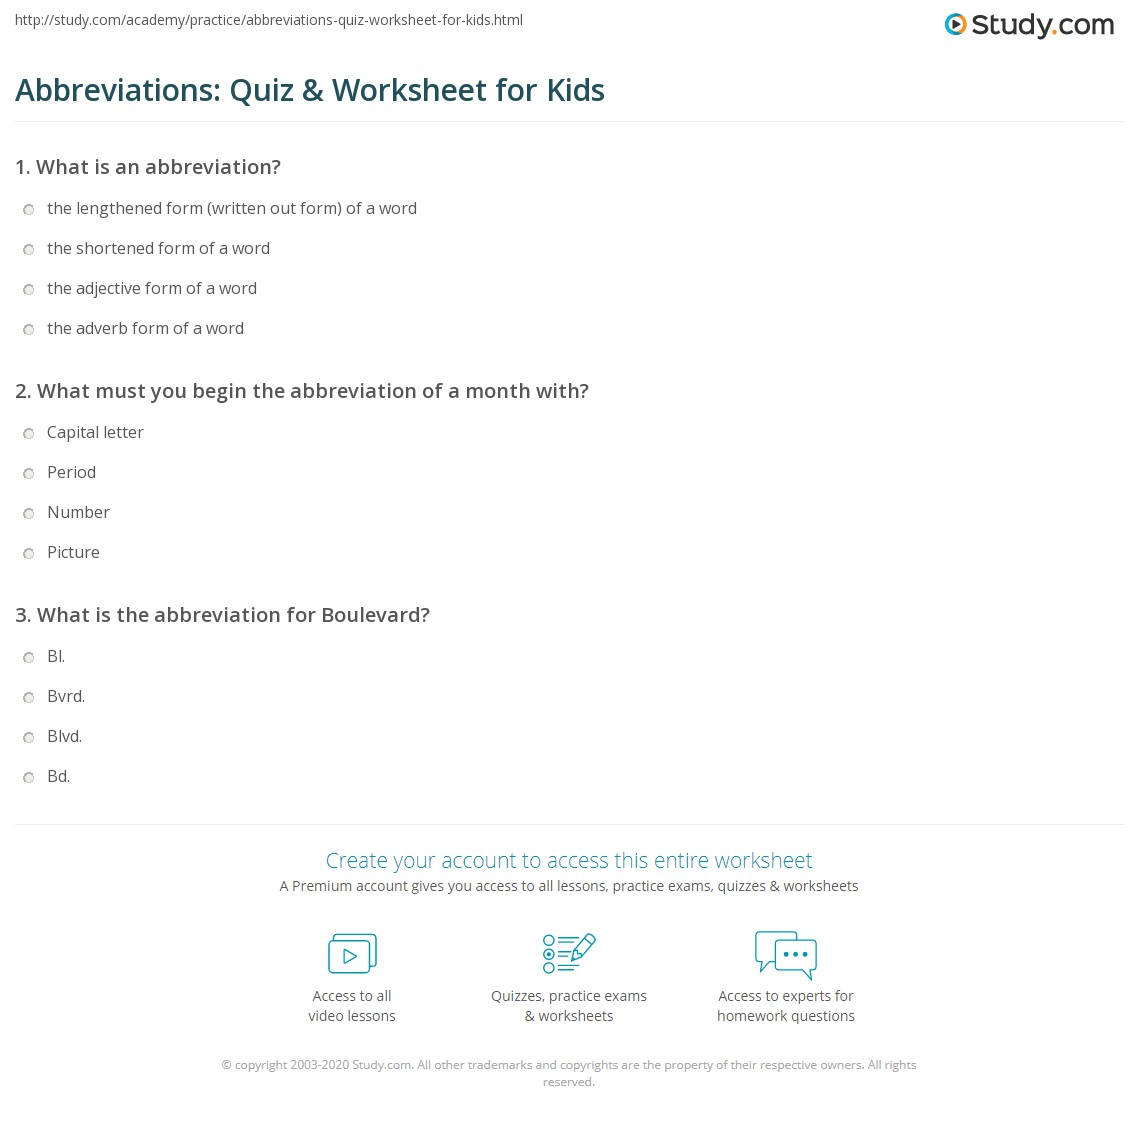 Abbreviations Quiz Worksheet for Kids – Abbreviations Worksheet